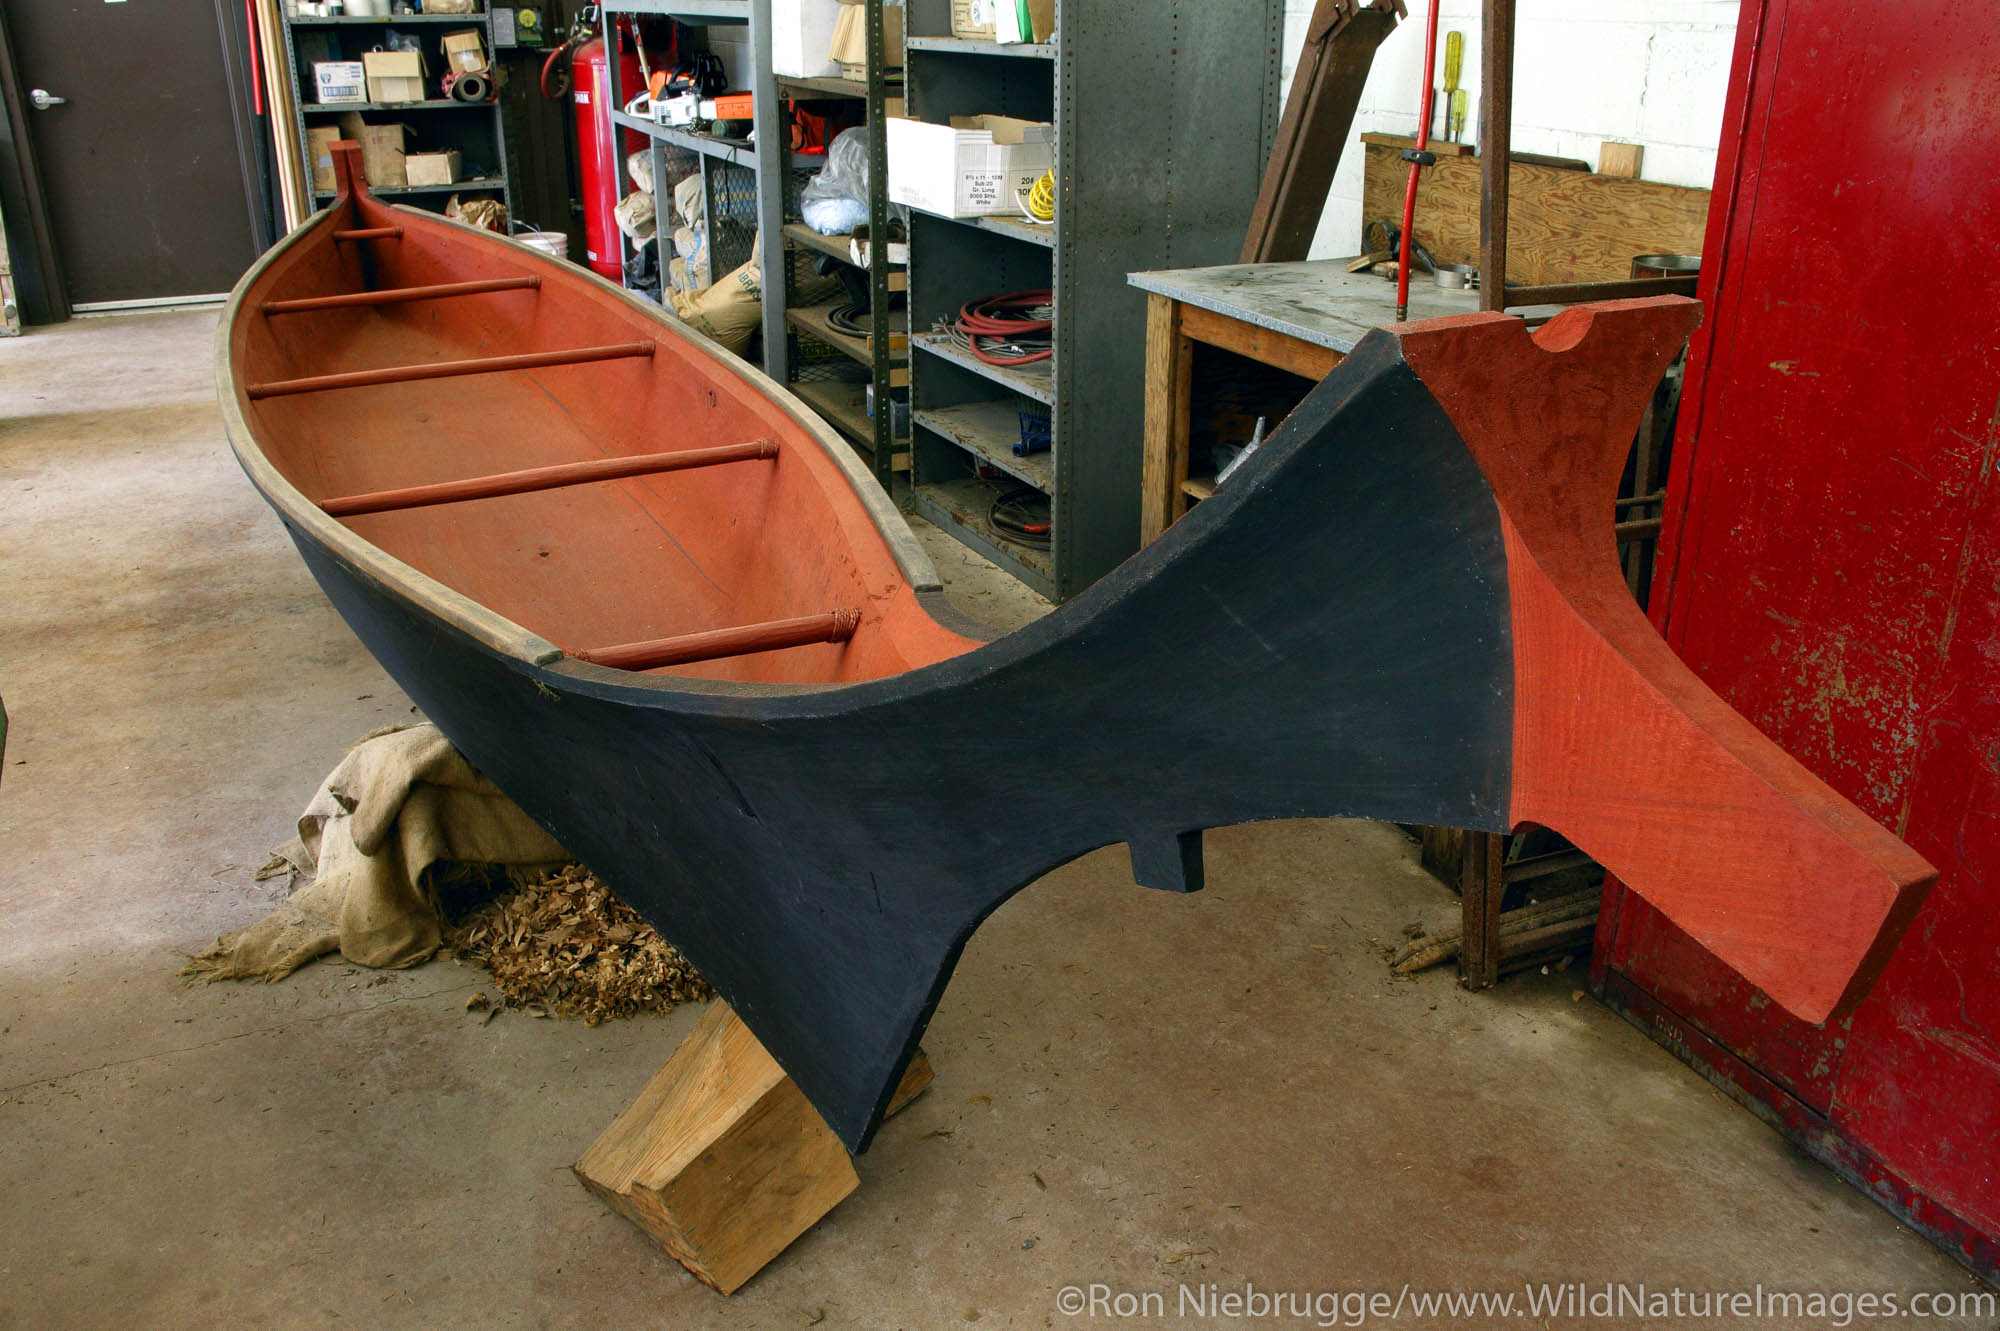 Canoe carved by local native at Fort Clatsop National Memorial, Astoria, Oregon.